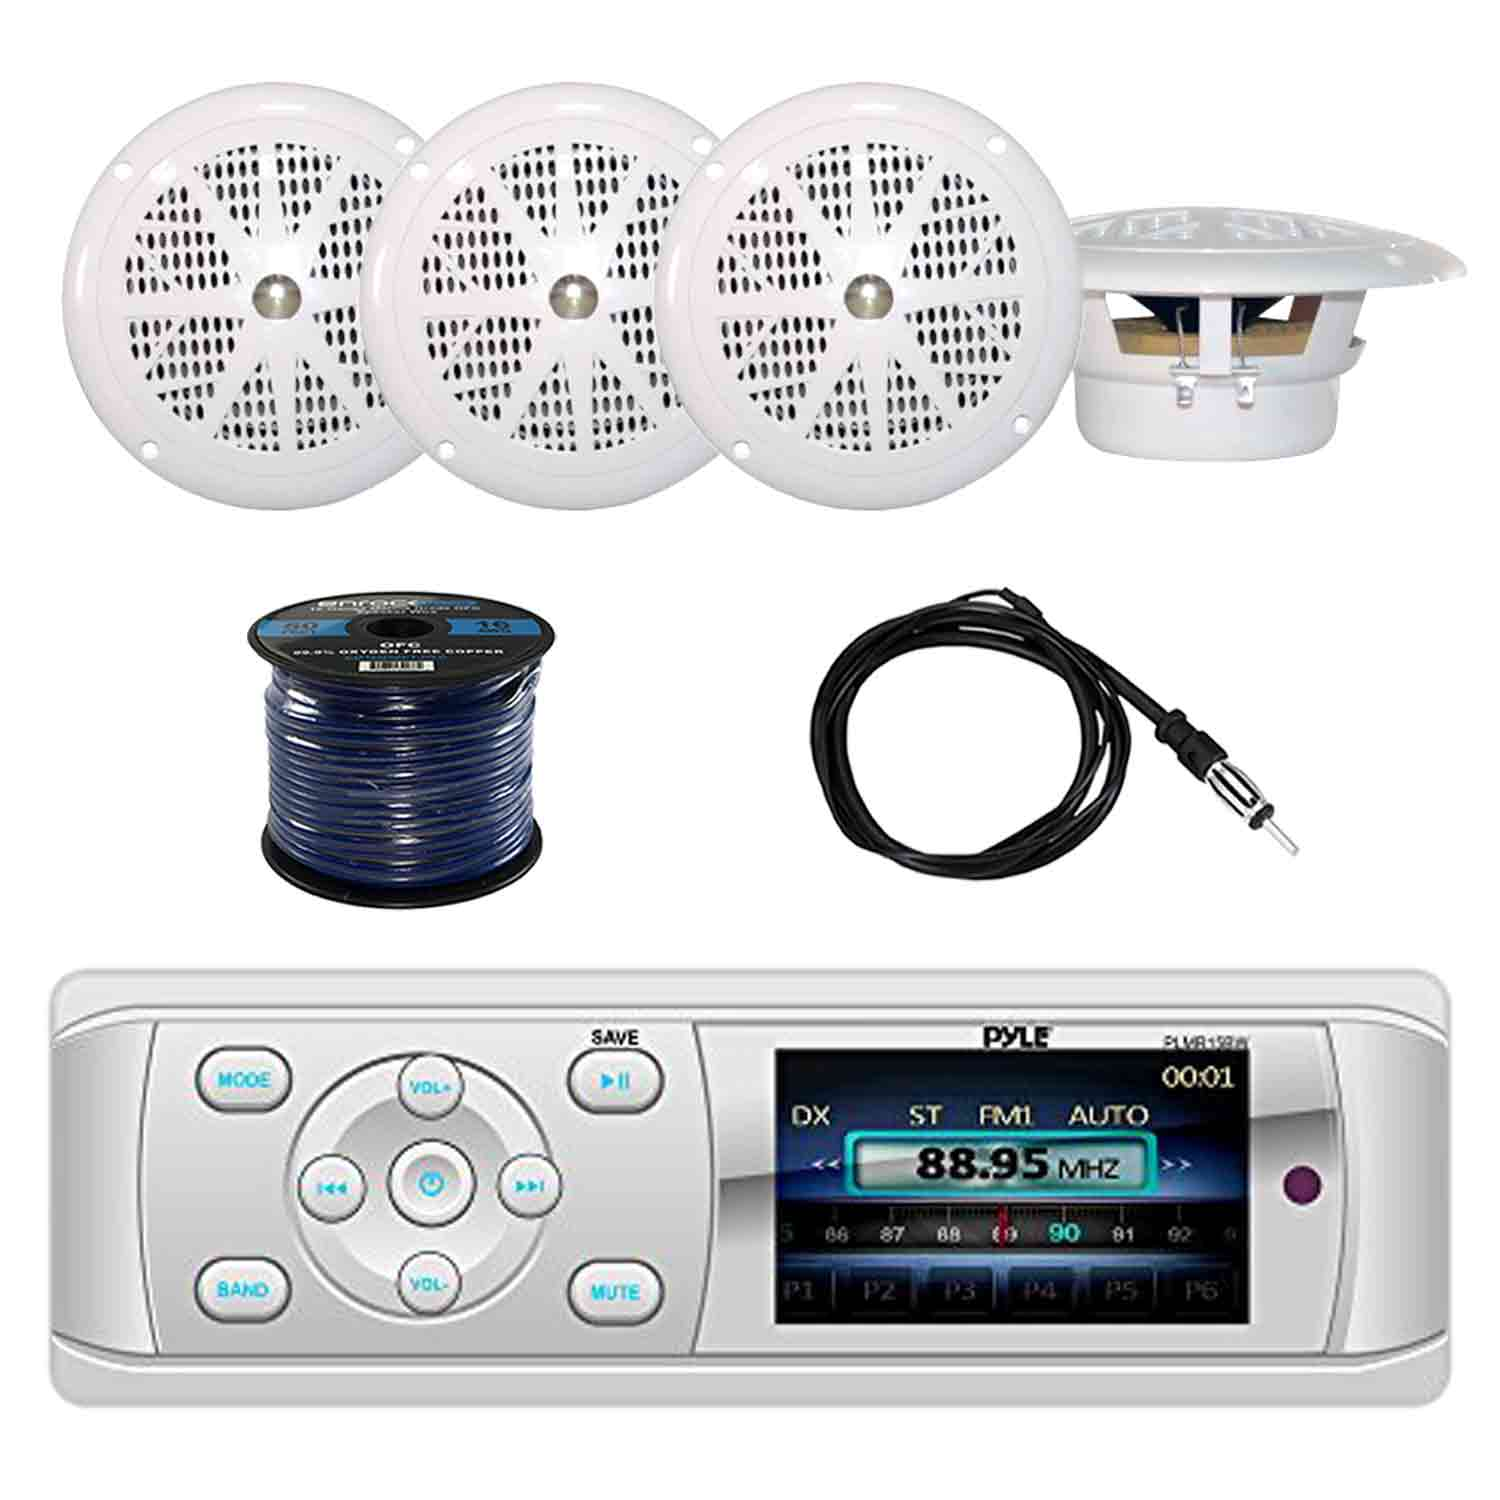 Pyle PLMR15BW Bluetooth Marine Stereo Radio Receiver with Pyle PLMR41W 4'' Dual Cone Waterproof Stereo Speakers(2-Pairs)(White), Enrock EKMR2 Marine Antenna & Enrock Marine 50' 16-Gauge Speaker Wire